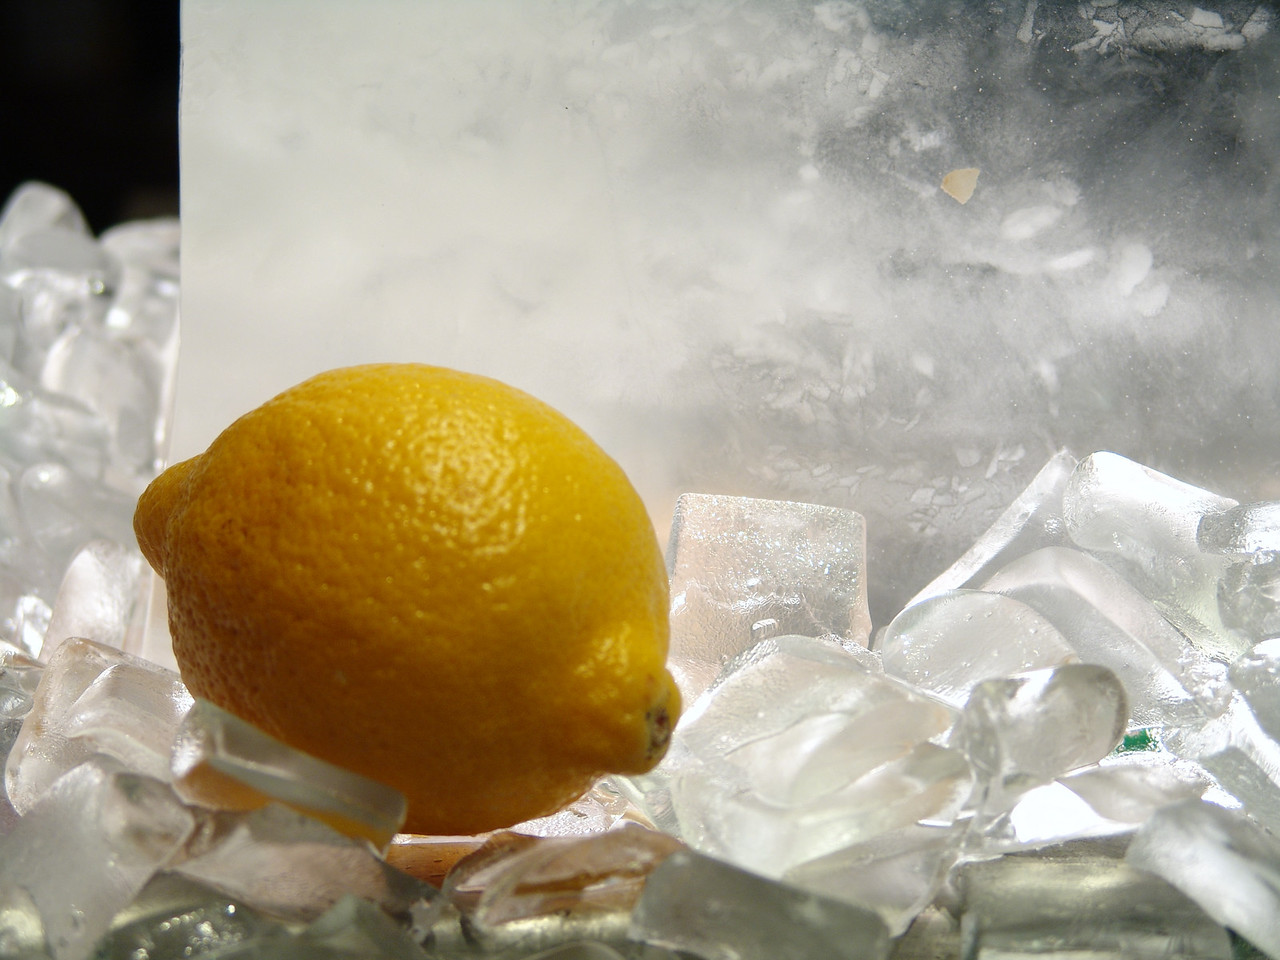 I repositioned lemon to bring it out of the ice. Unretouched picture.